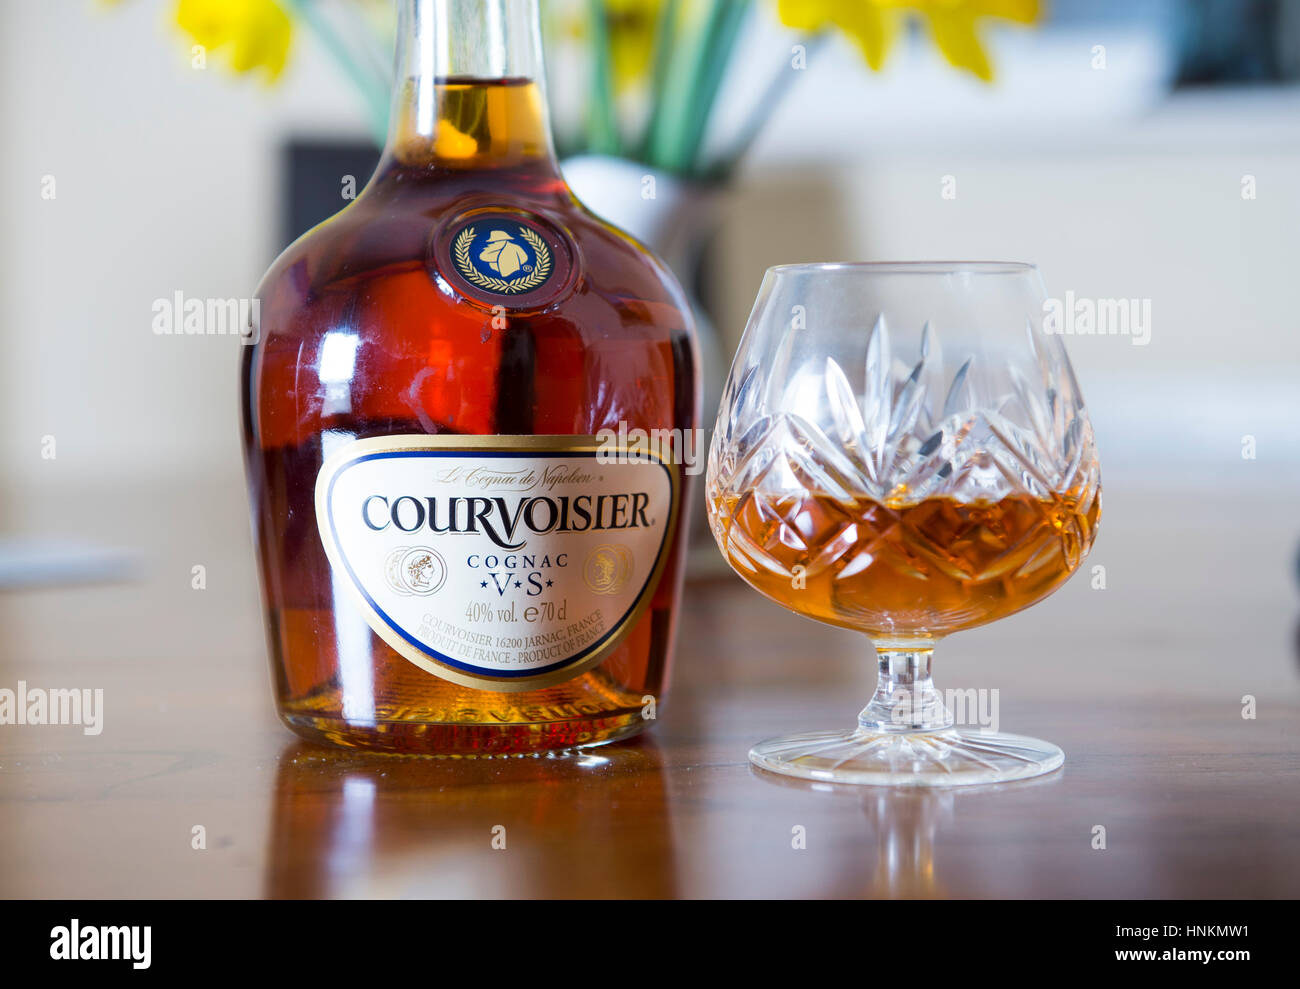 how to drink cognac courvoisier